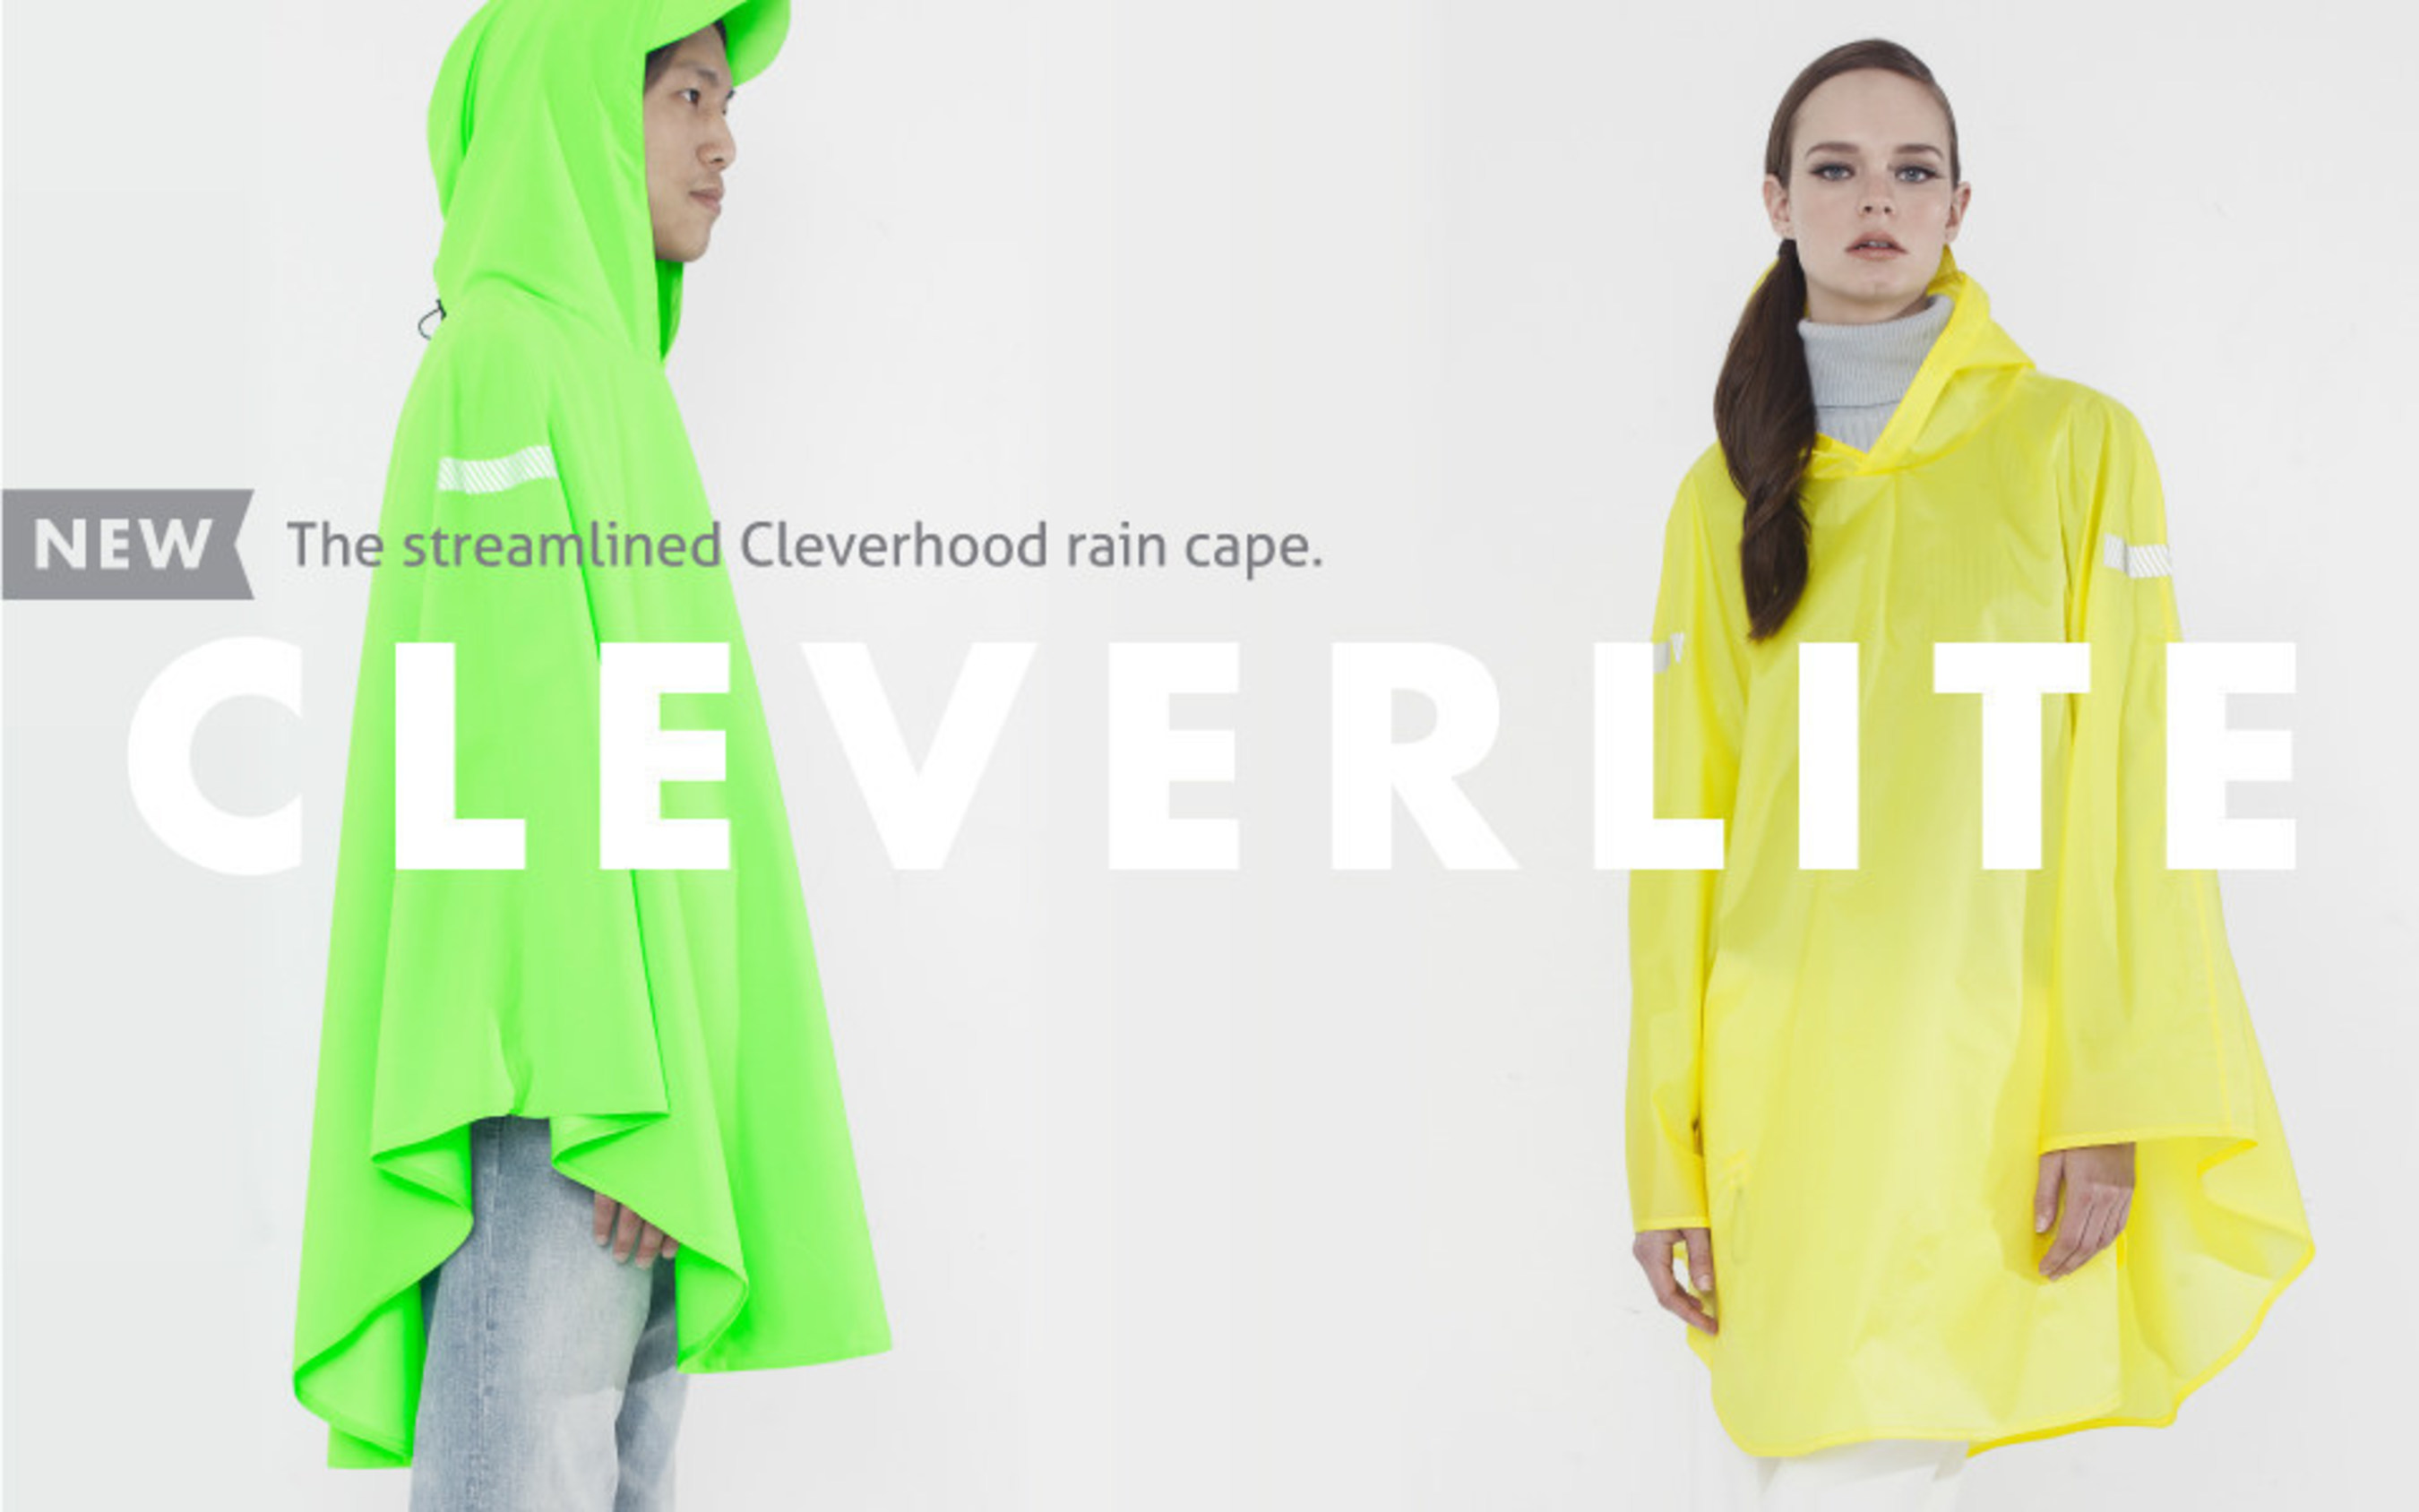 Cleverhood's new line of rain capes made in Fall River. Bike-ready for livable cities.